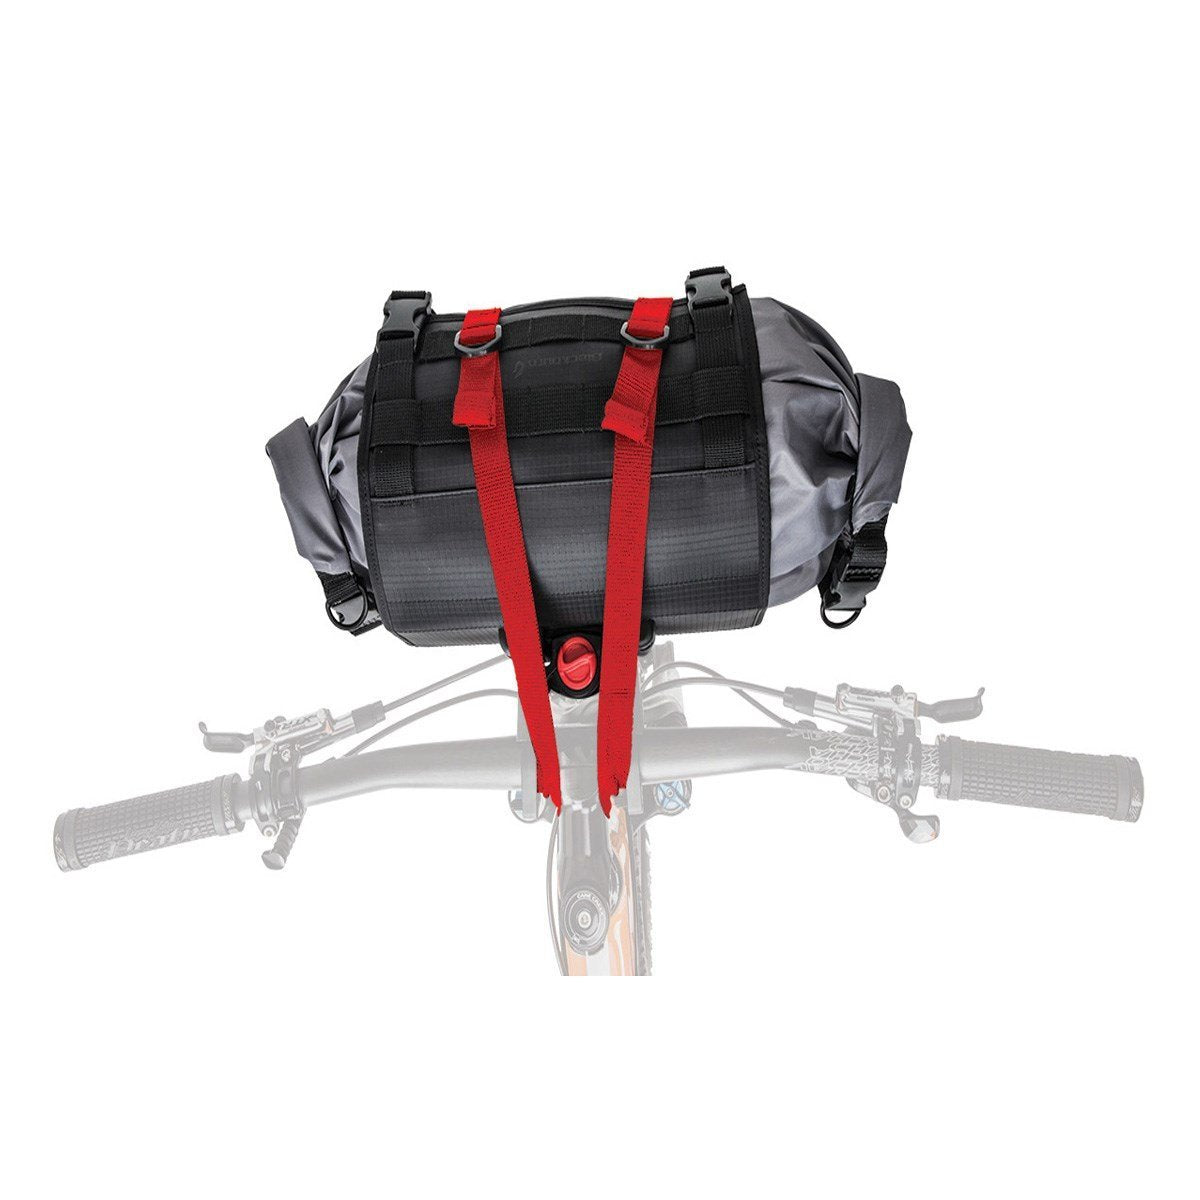 Blackburn Accessories > Bags & Seatpacks Blackburn Outpost Handlebar Roll and Dry Bag